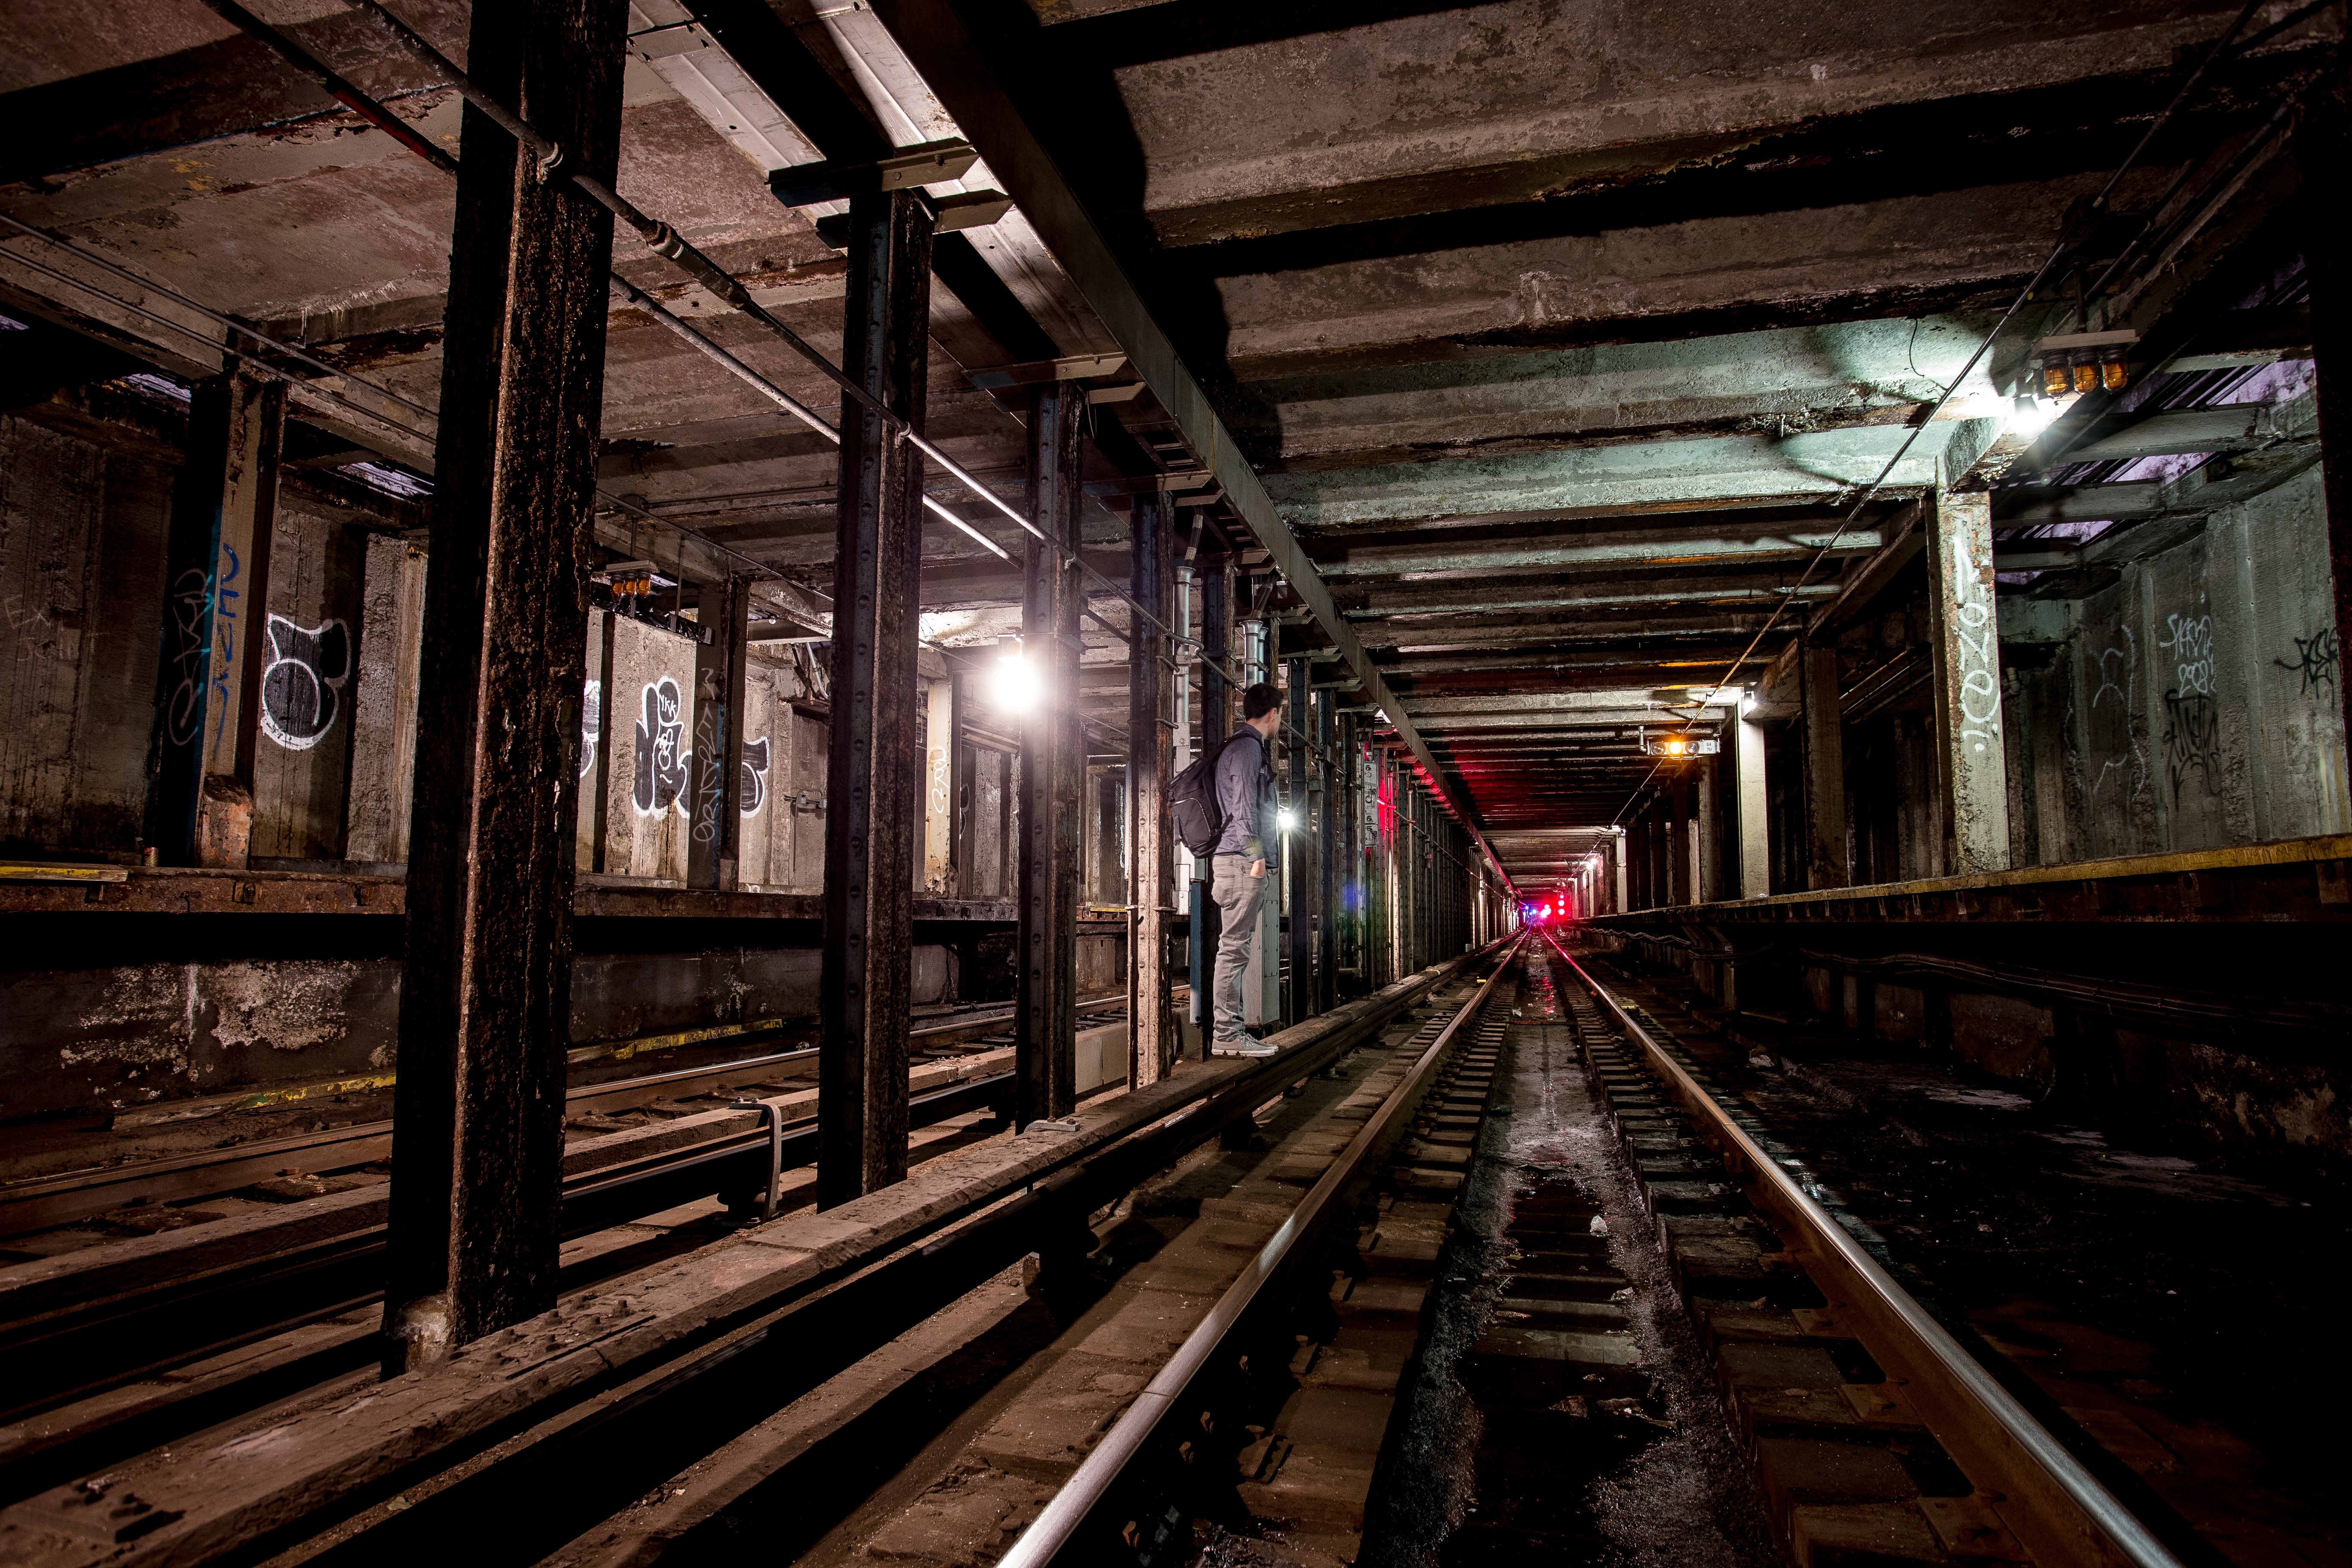 Standing on 3rd rail, abandoned station, The Initiation